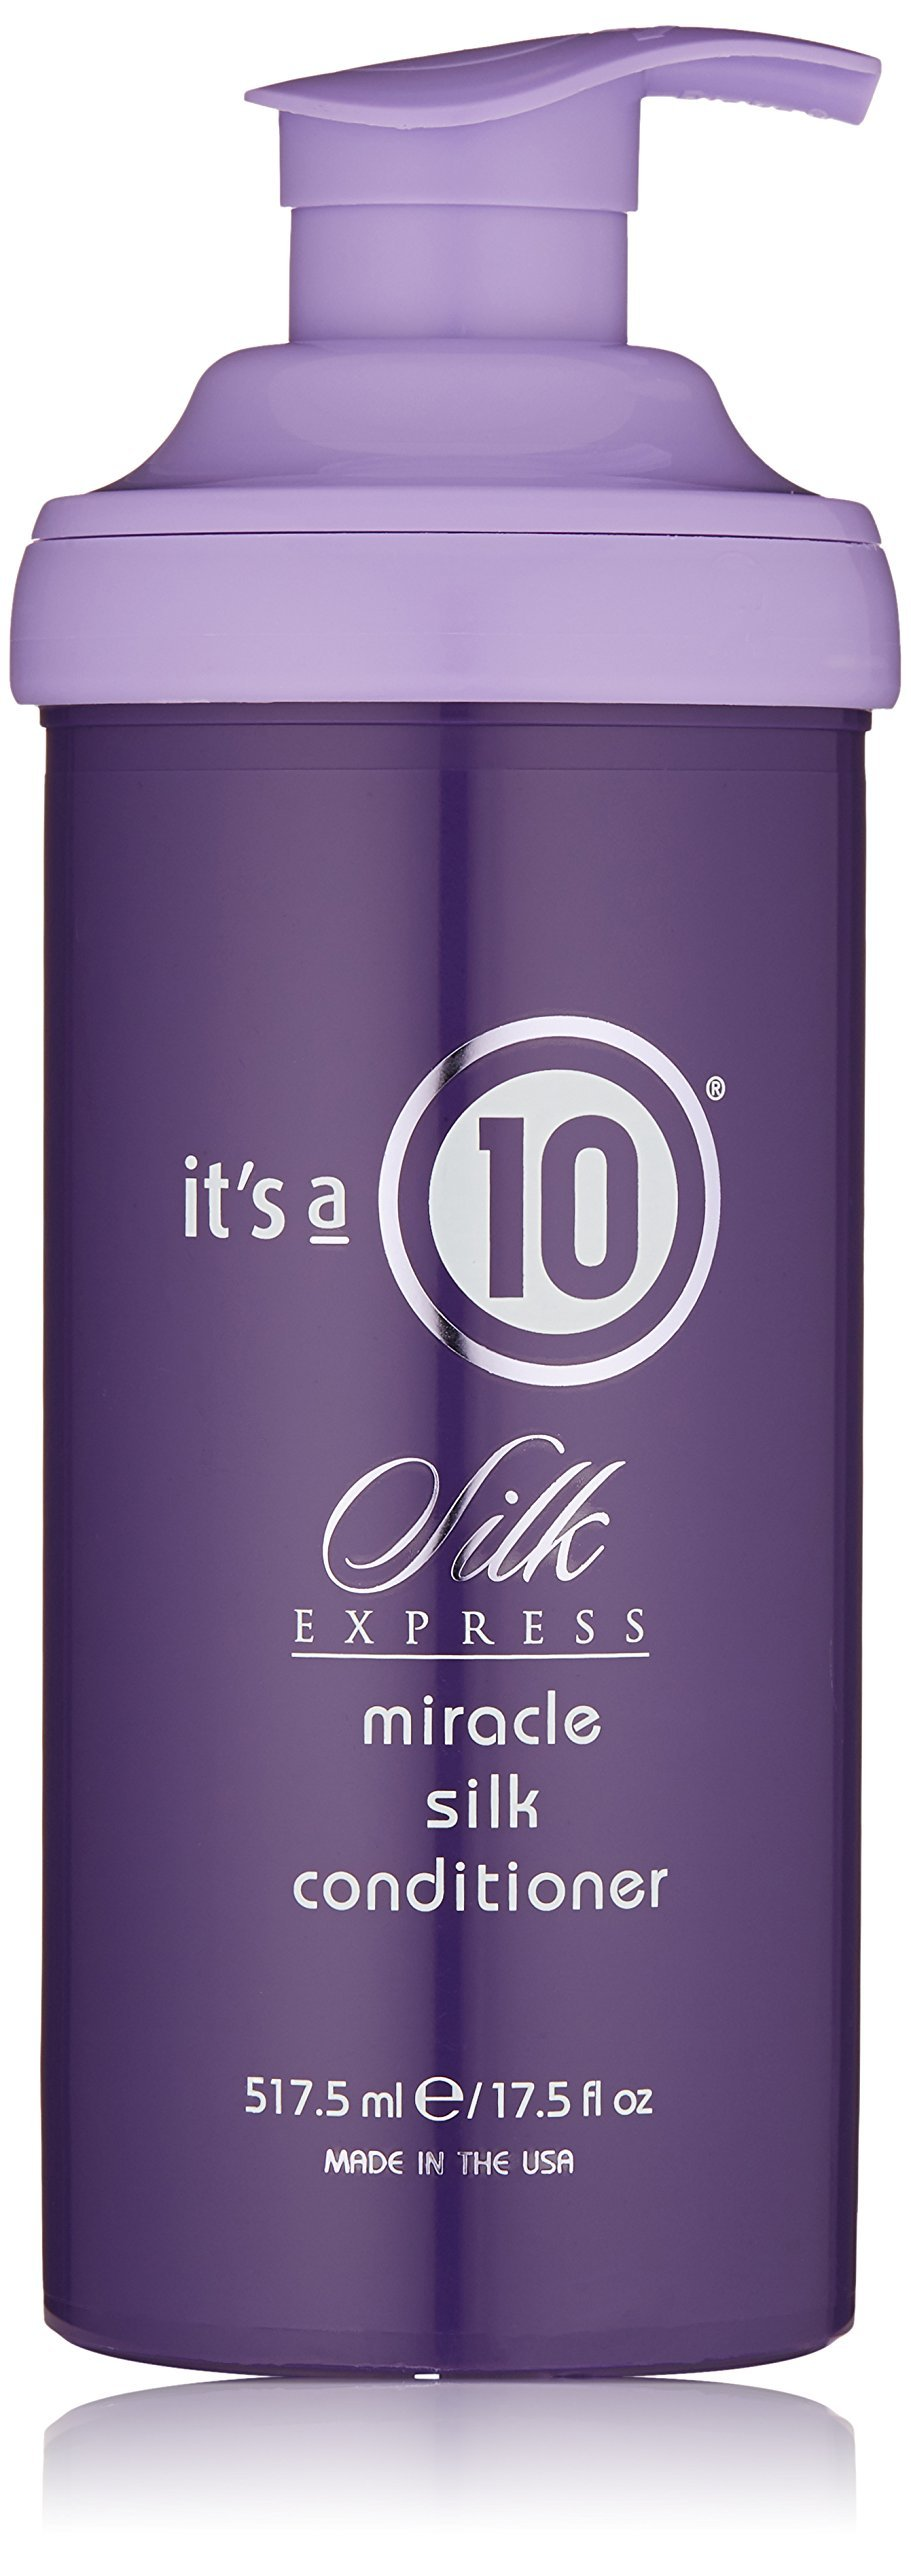 It's a 10 Haircare Silk Express Miracle Silk Conditioner, 17.5 fl. oz.